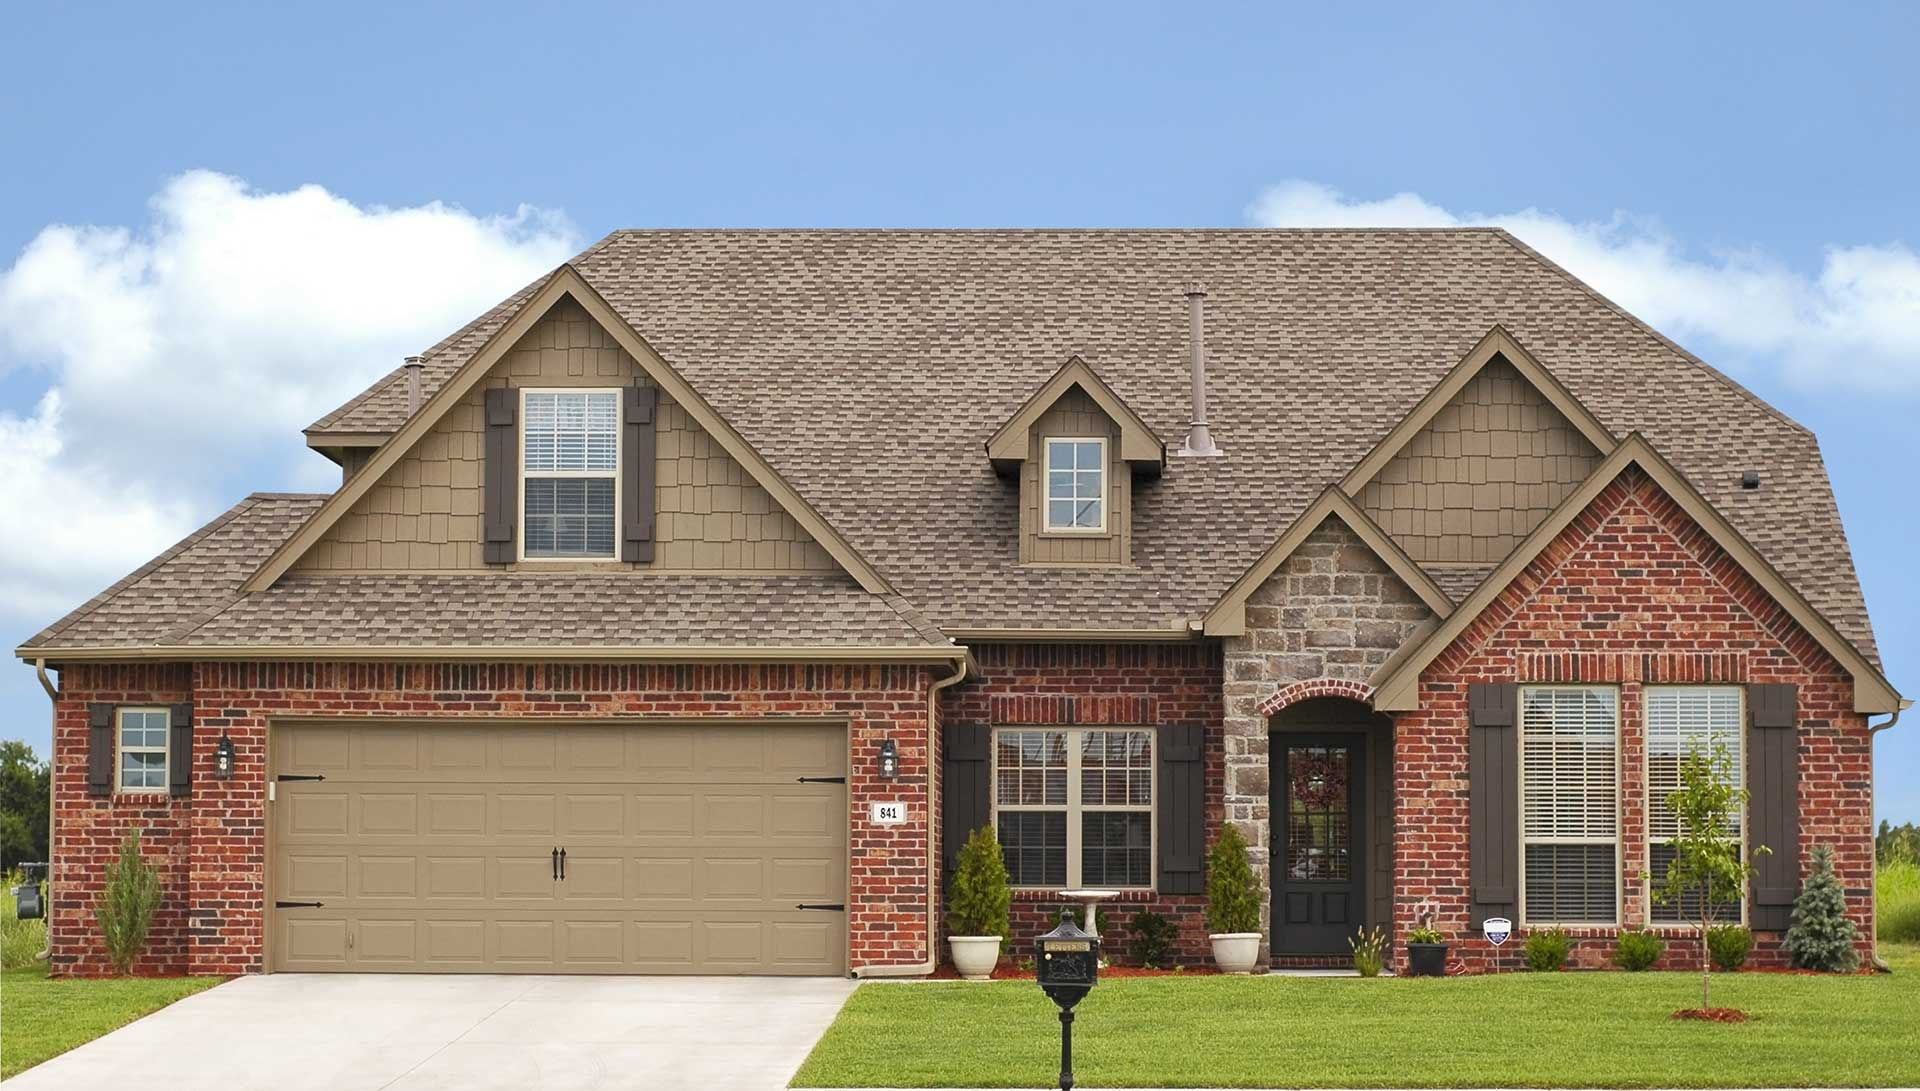 Reroofing Services Gainesville, FL